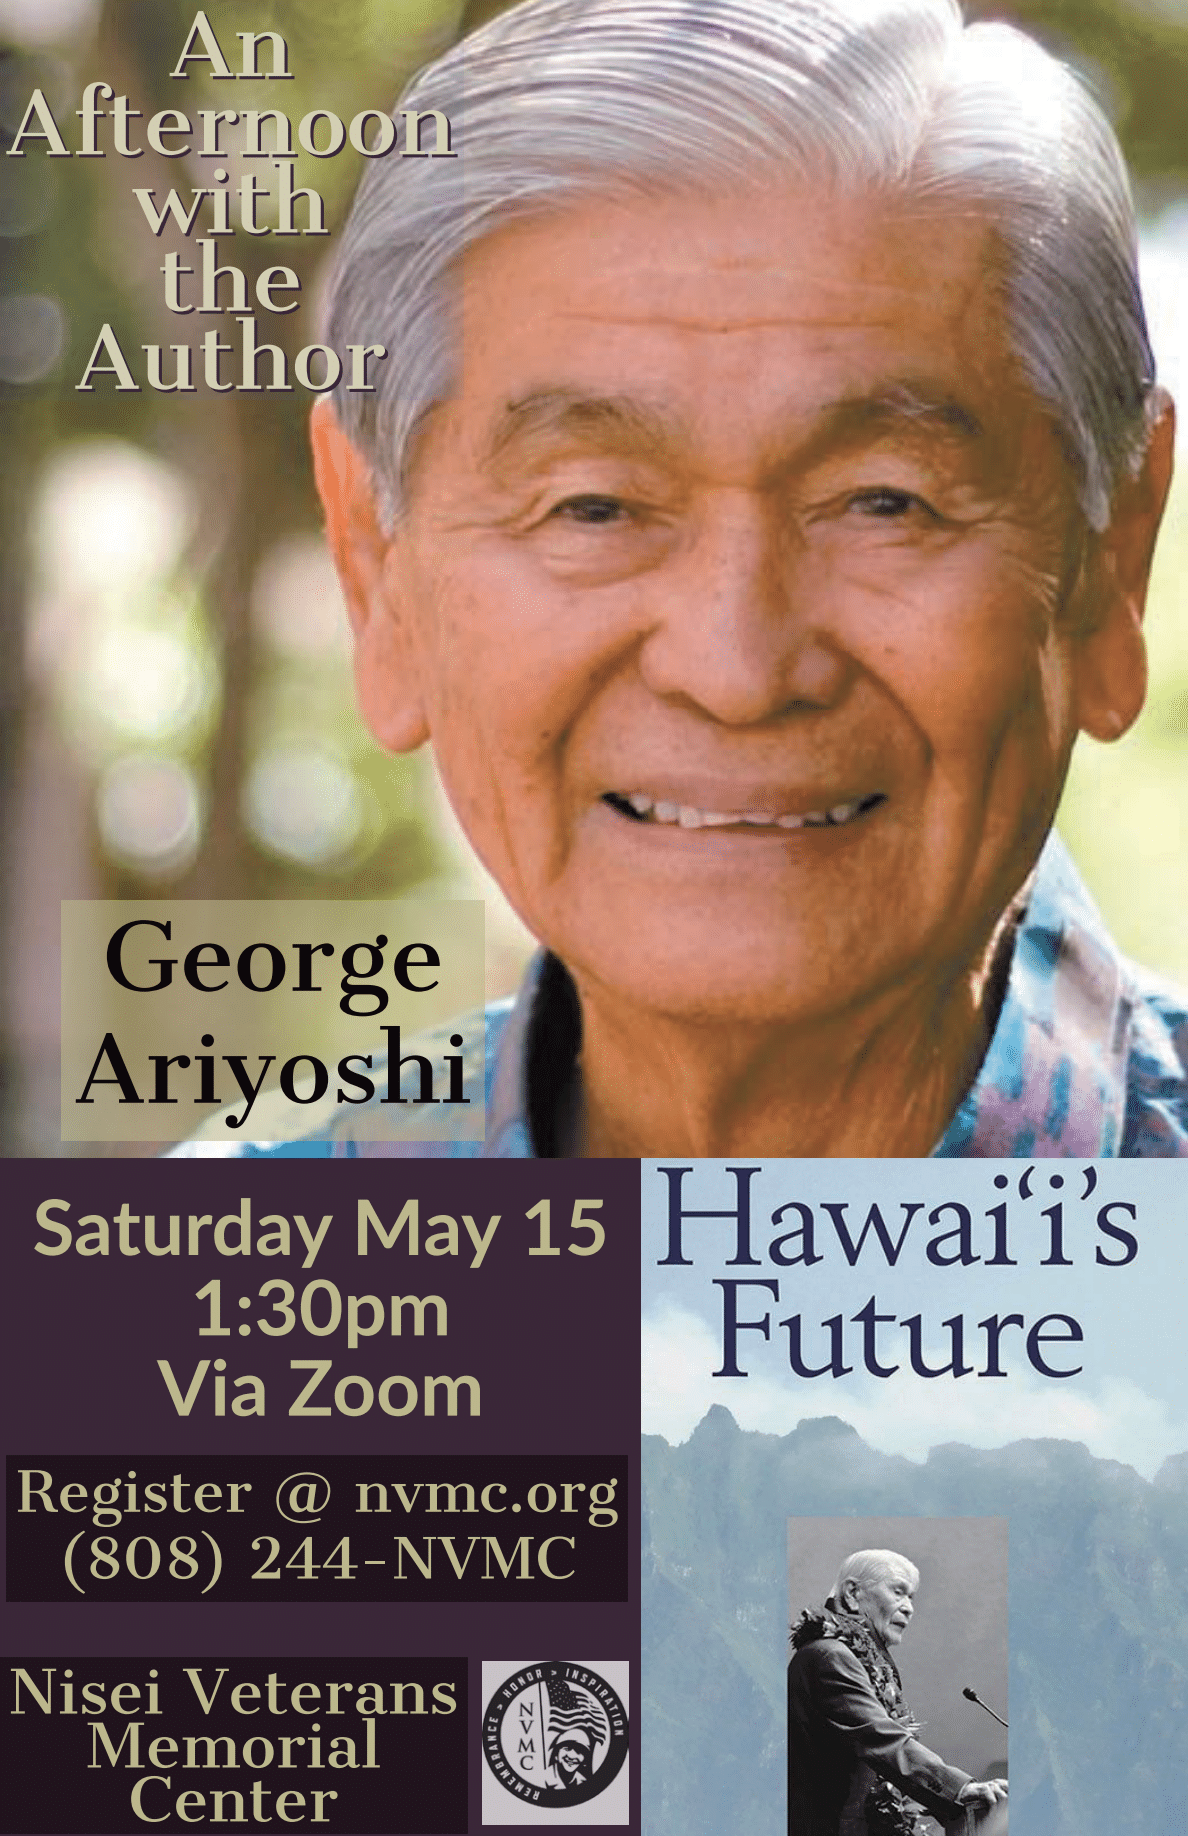 spend the afternoon with george ariyoshi